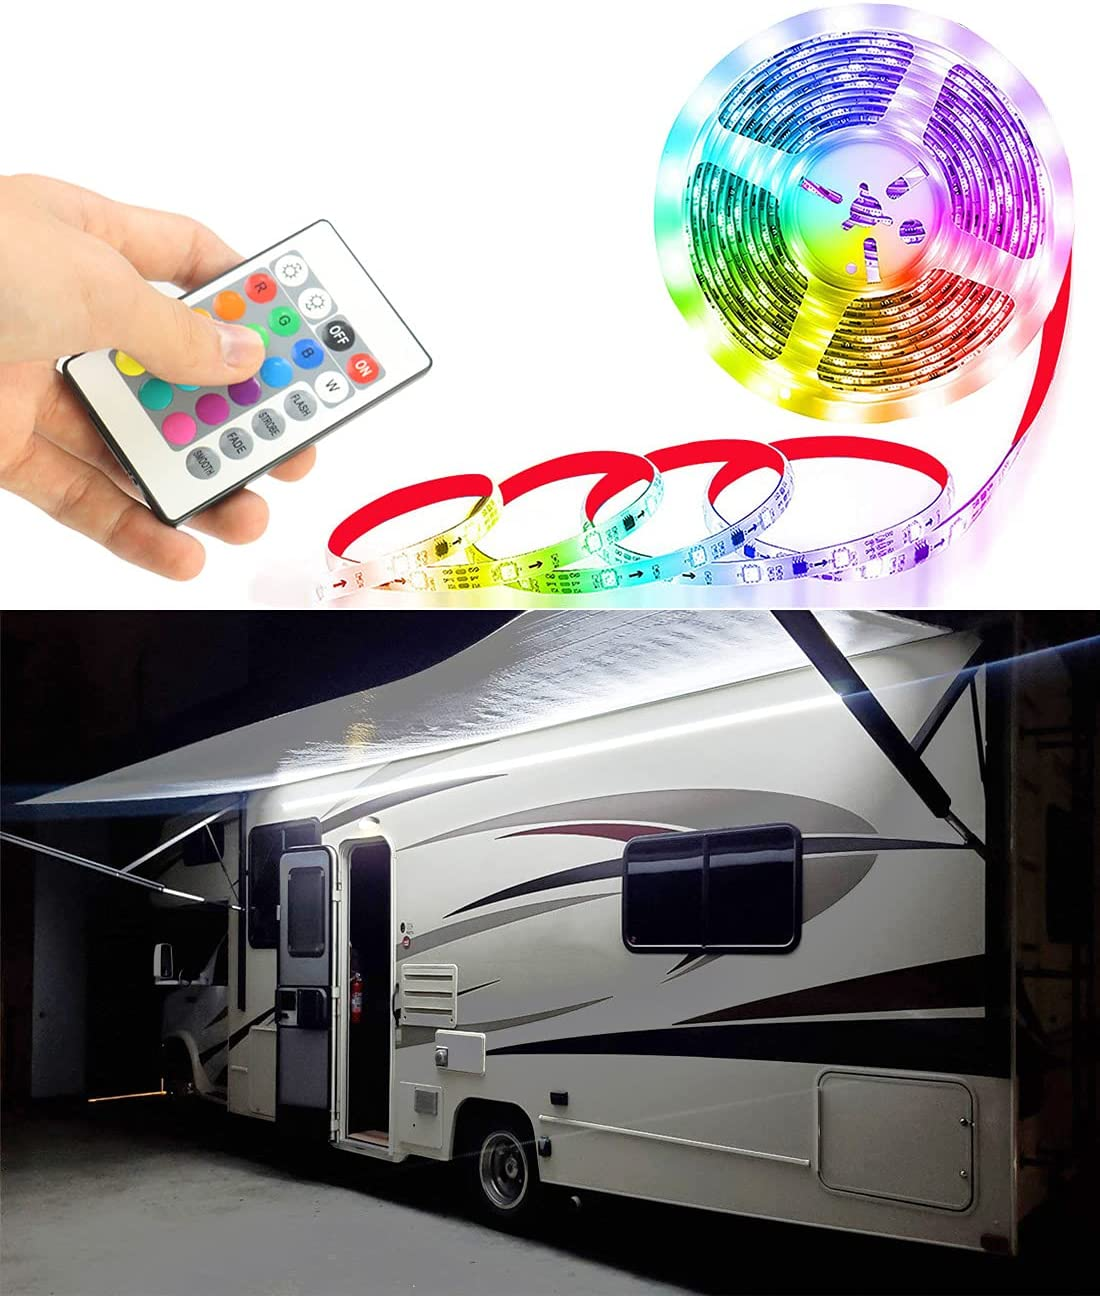 Seagenck RV Led Awning Party Light, Led Awning Strip Light for Camper Motorhome Travel Trailer Concession Stands Food Trucks, Light Up Canopy Area for BBQ Play Cards, 5m(16.4ft), Dc 12v, RGB